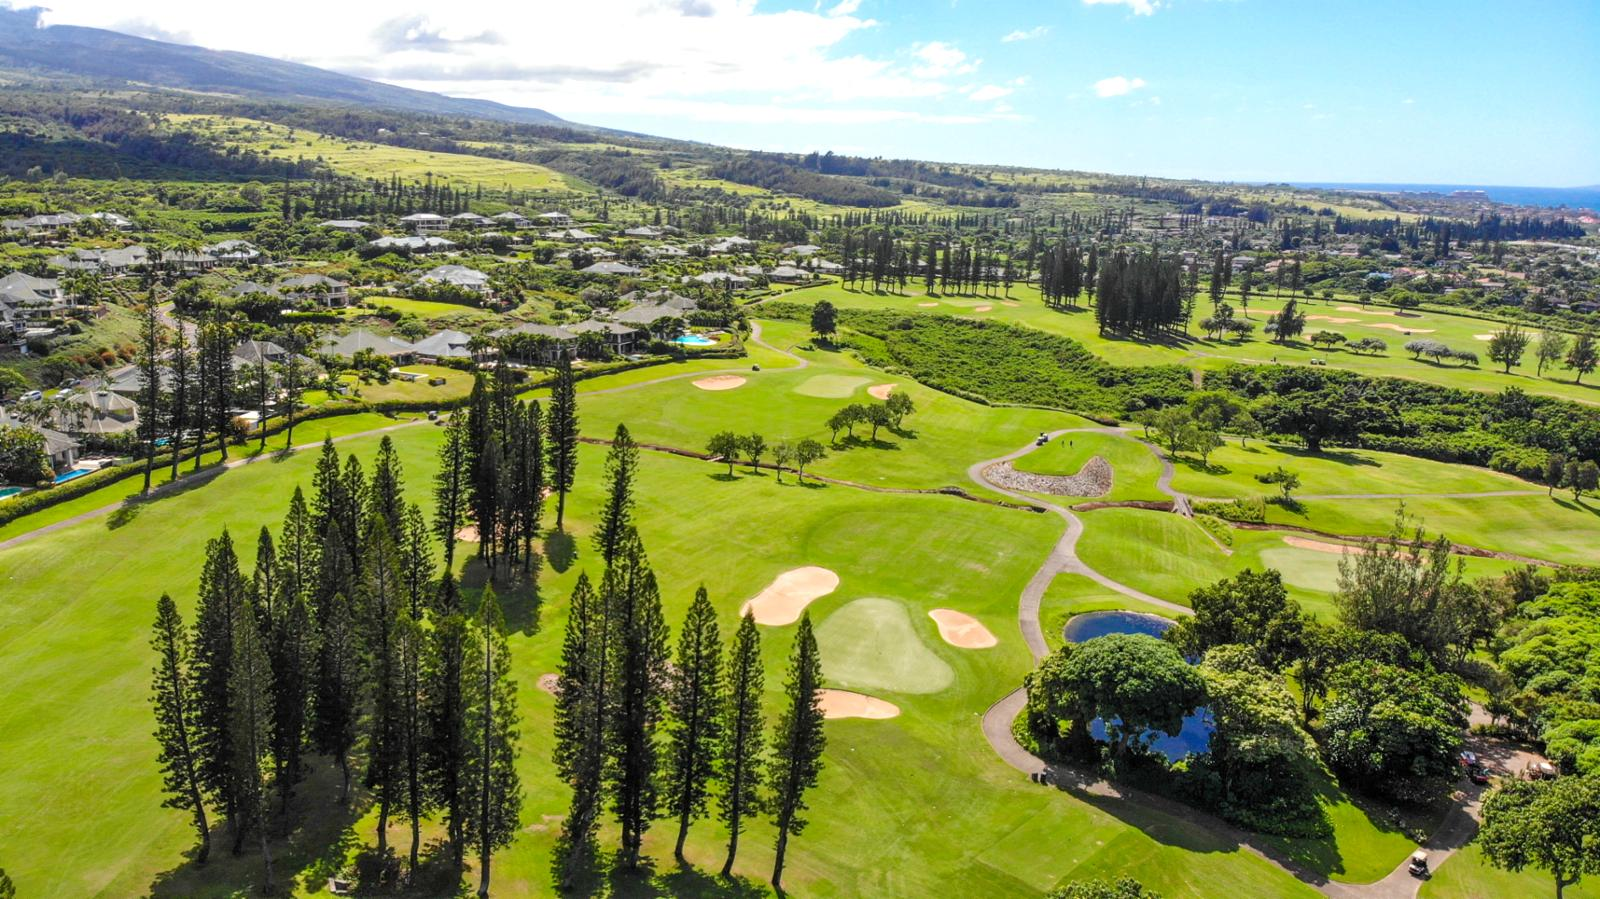 These mountain and golf course views will surely not disappoint